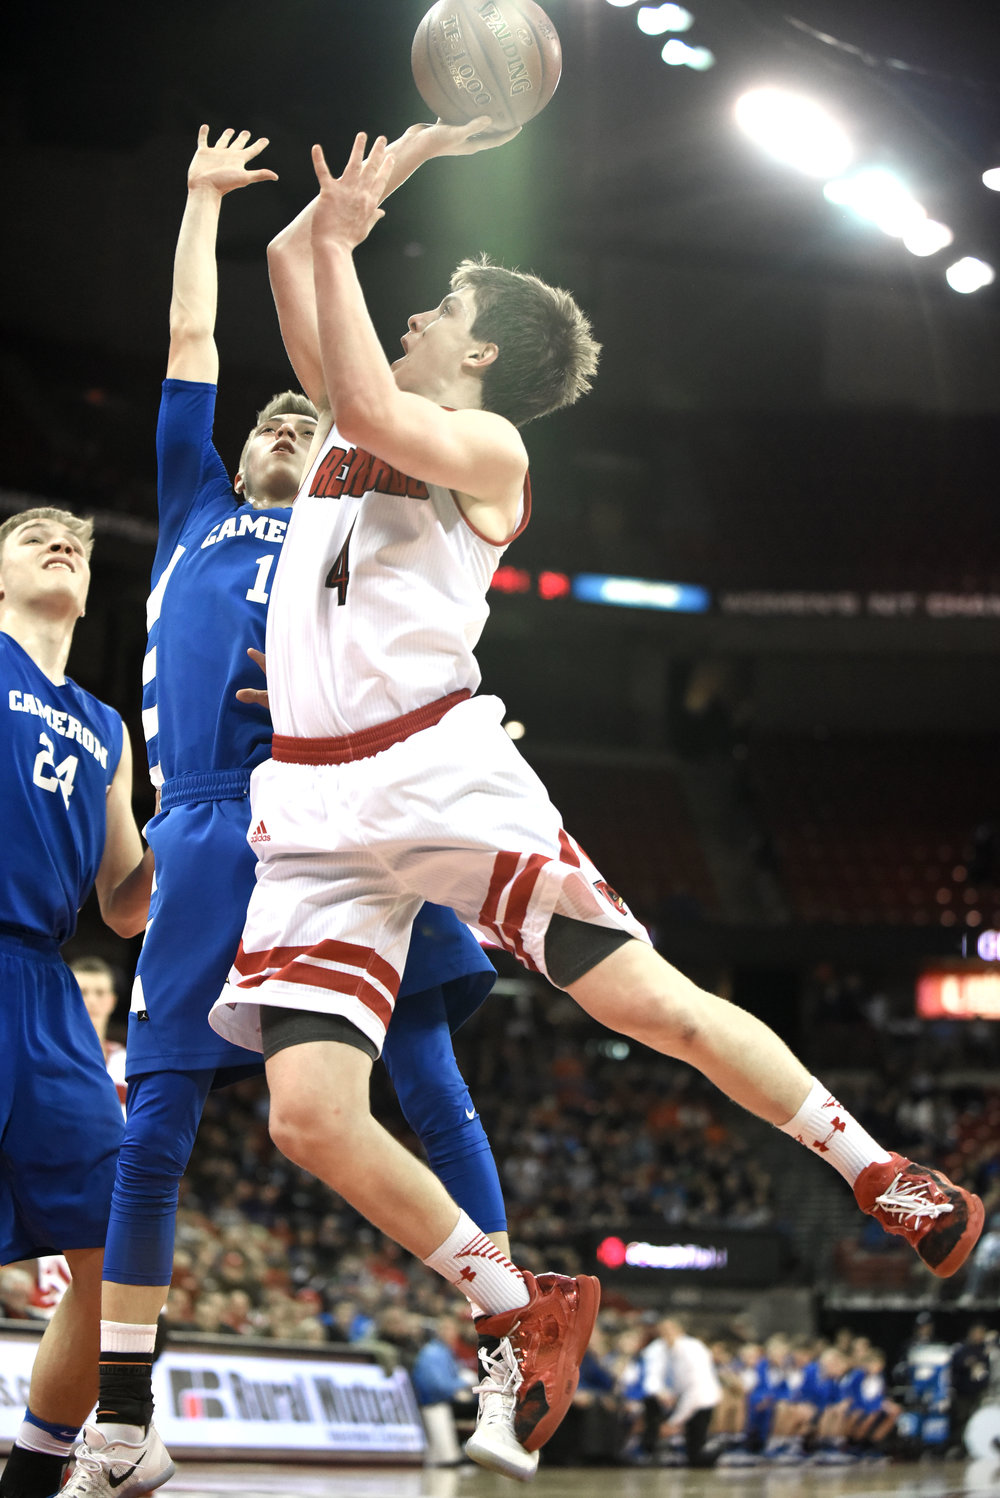 Darlington senior Ryan Glendenning scores against Cameron during their Division 4 State Semifinal game at the Kohl Center March 16, 2017.